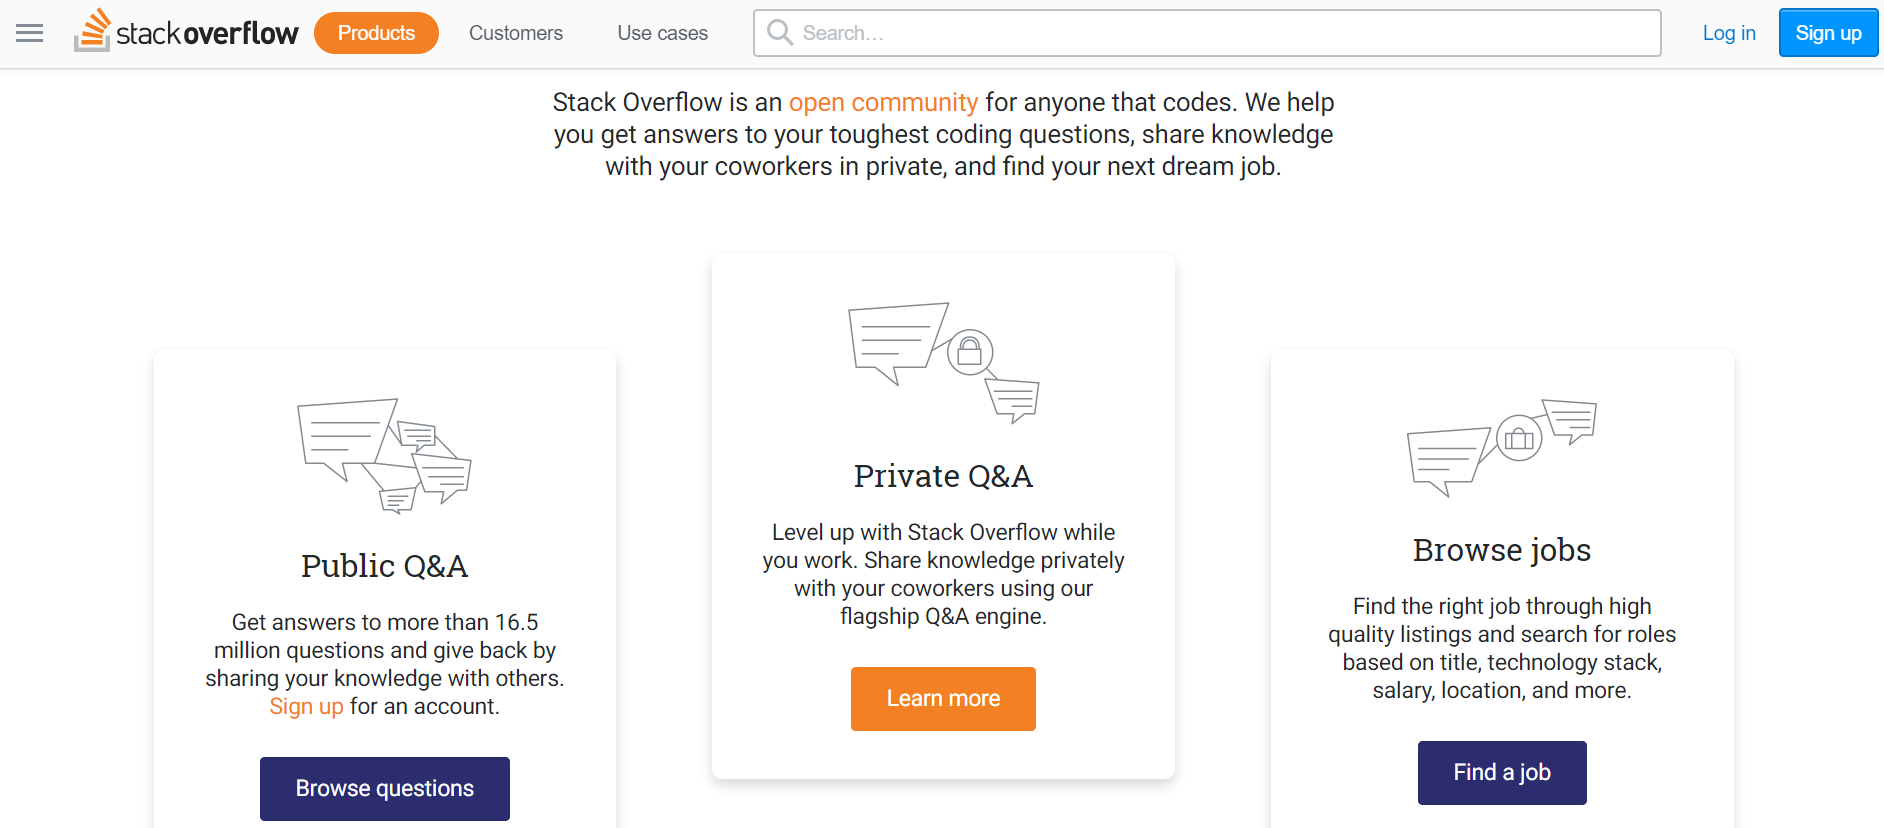 Stack Overflow - Social Media Recruiting